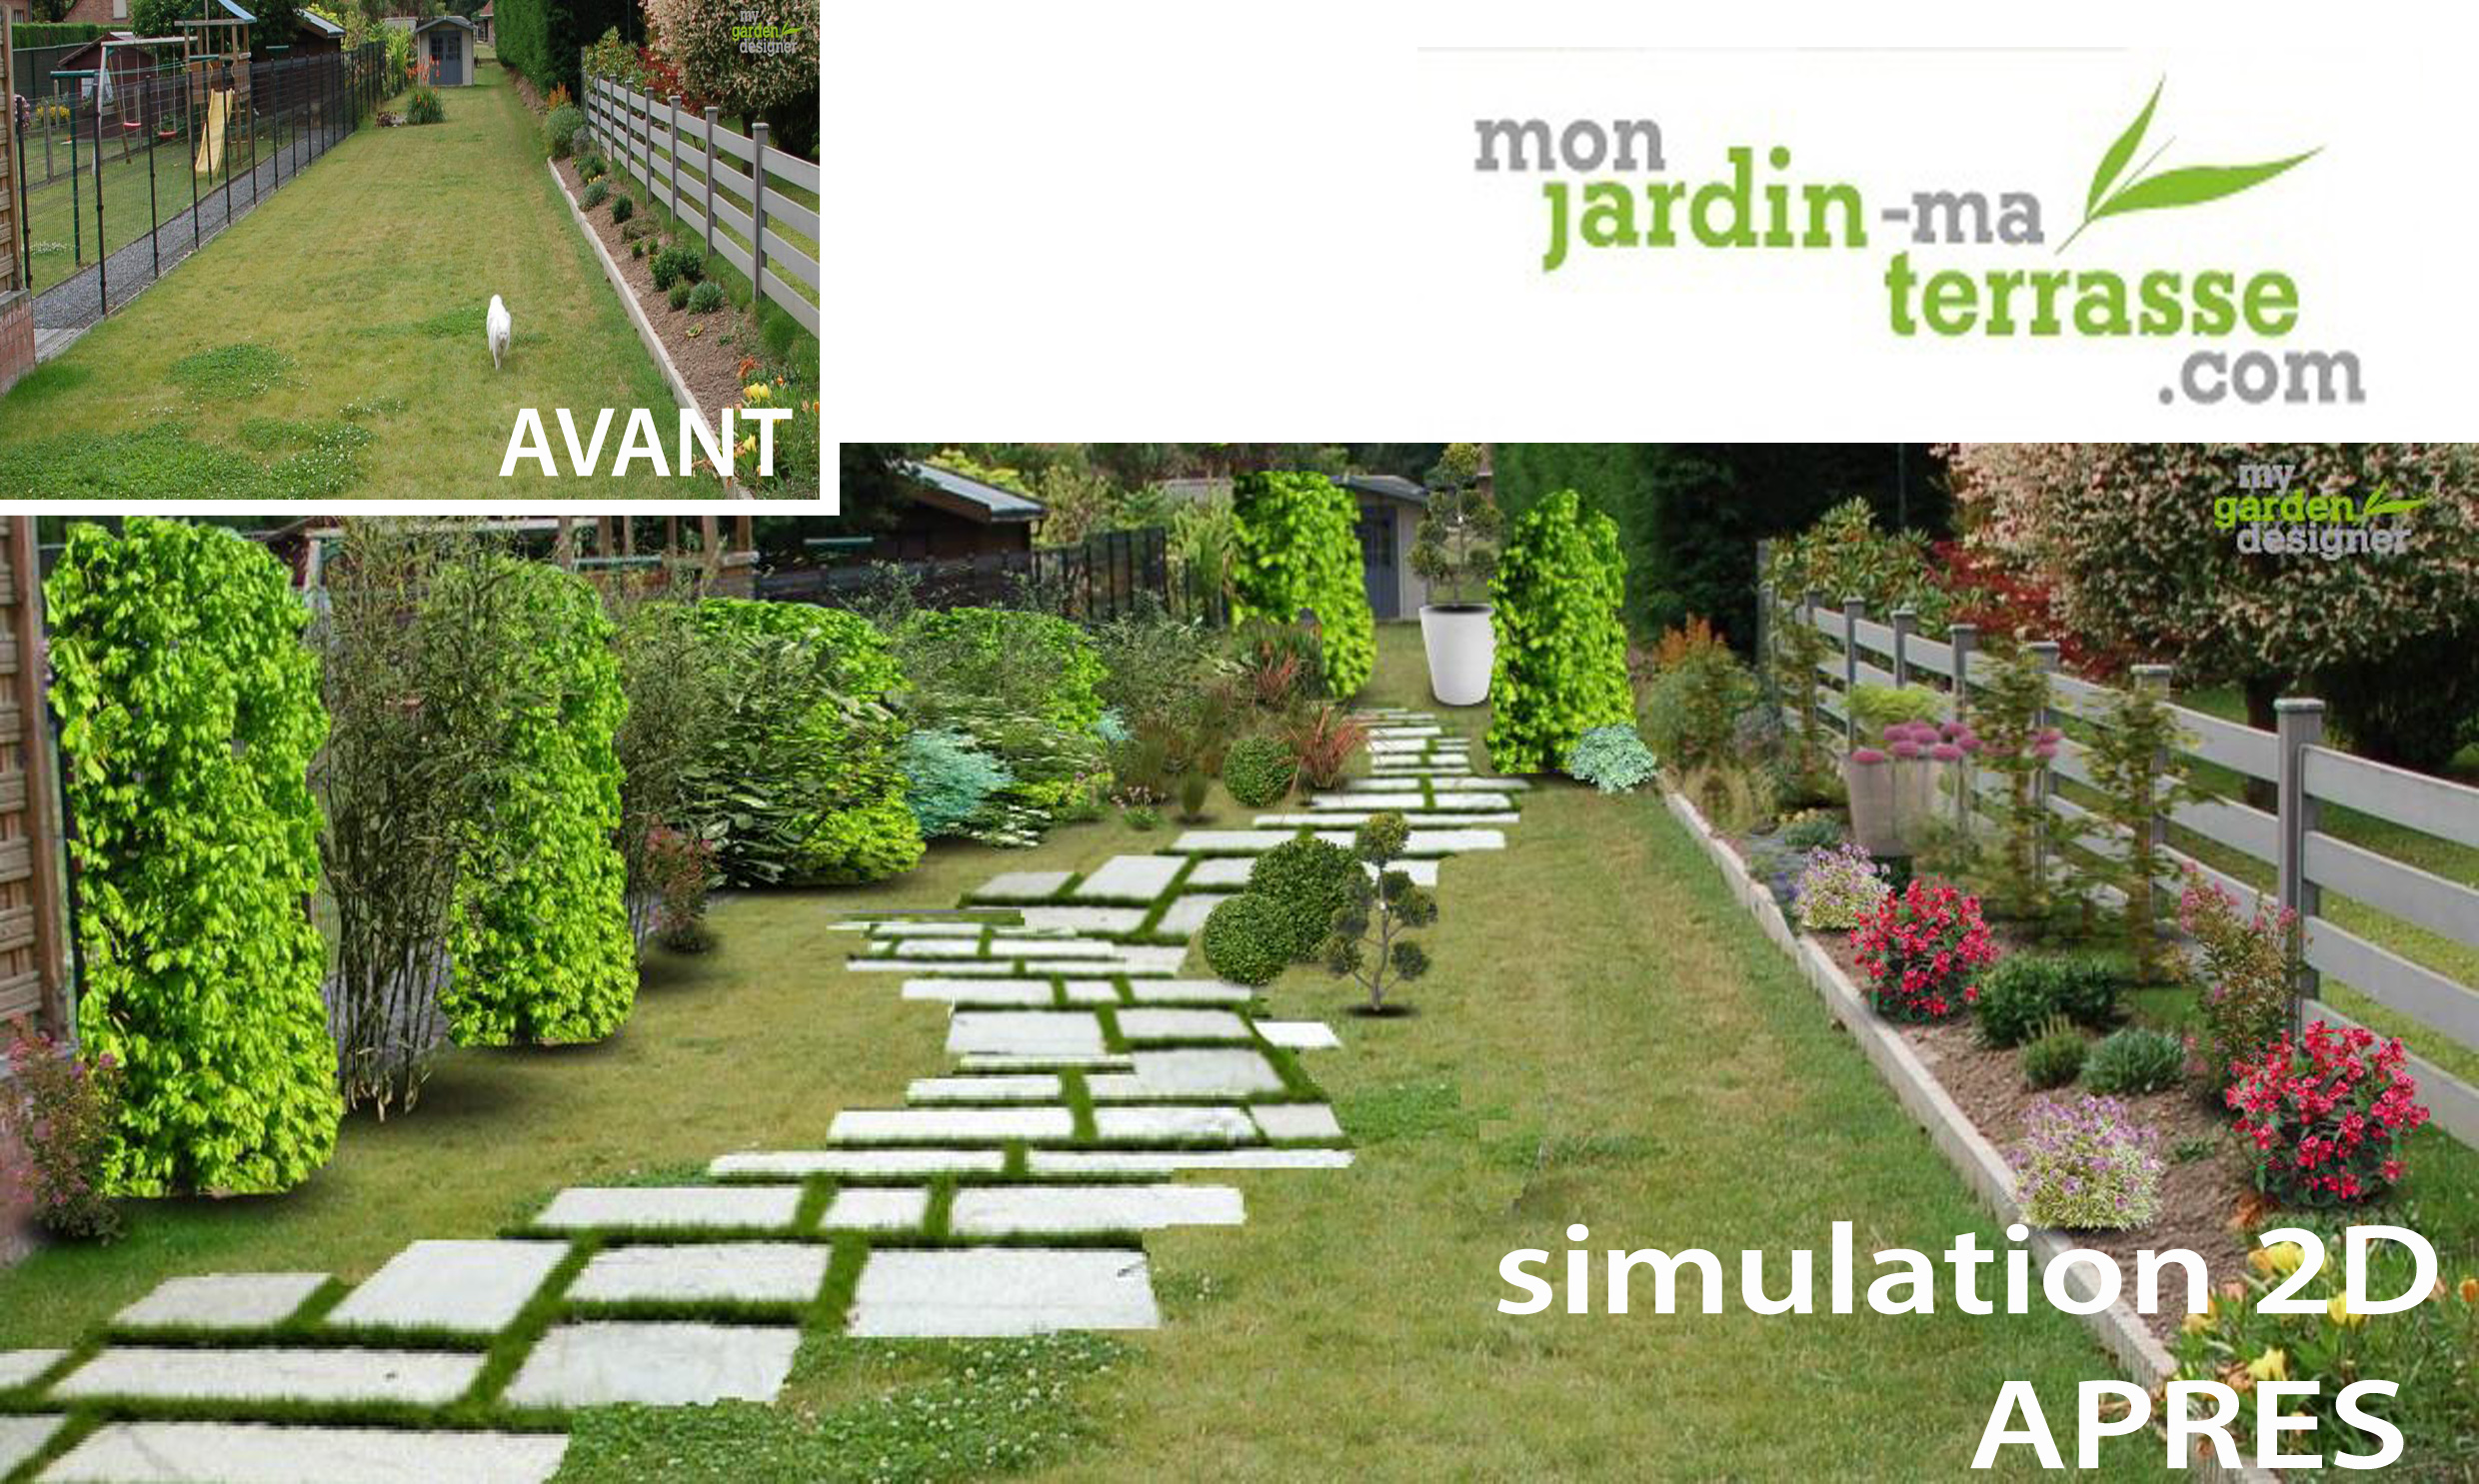 Comment am nager son jardin en longueur monjardin for Amenager son jardin de ville